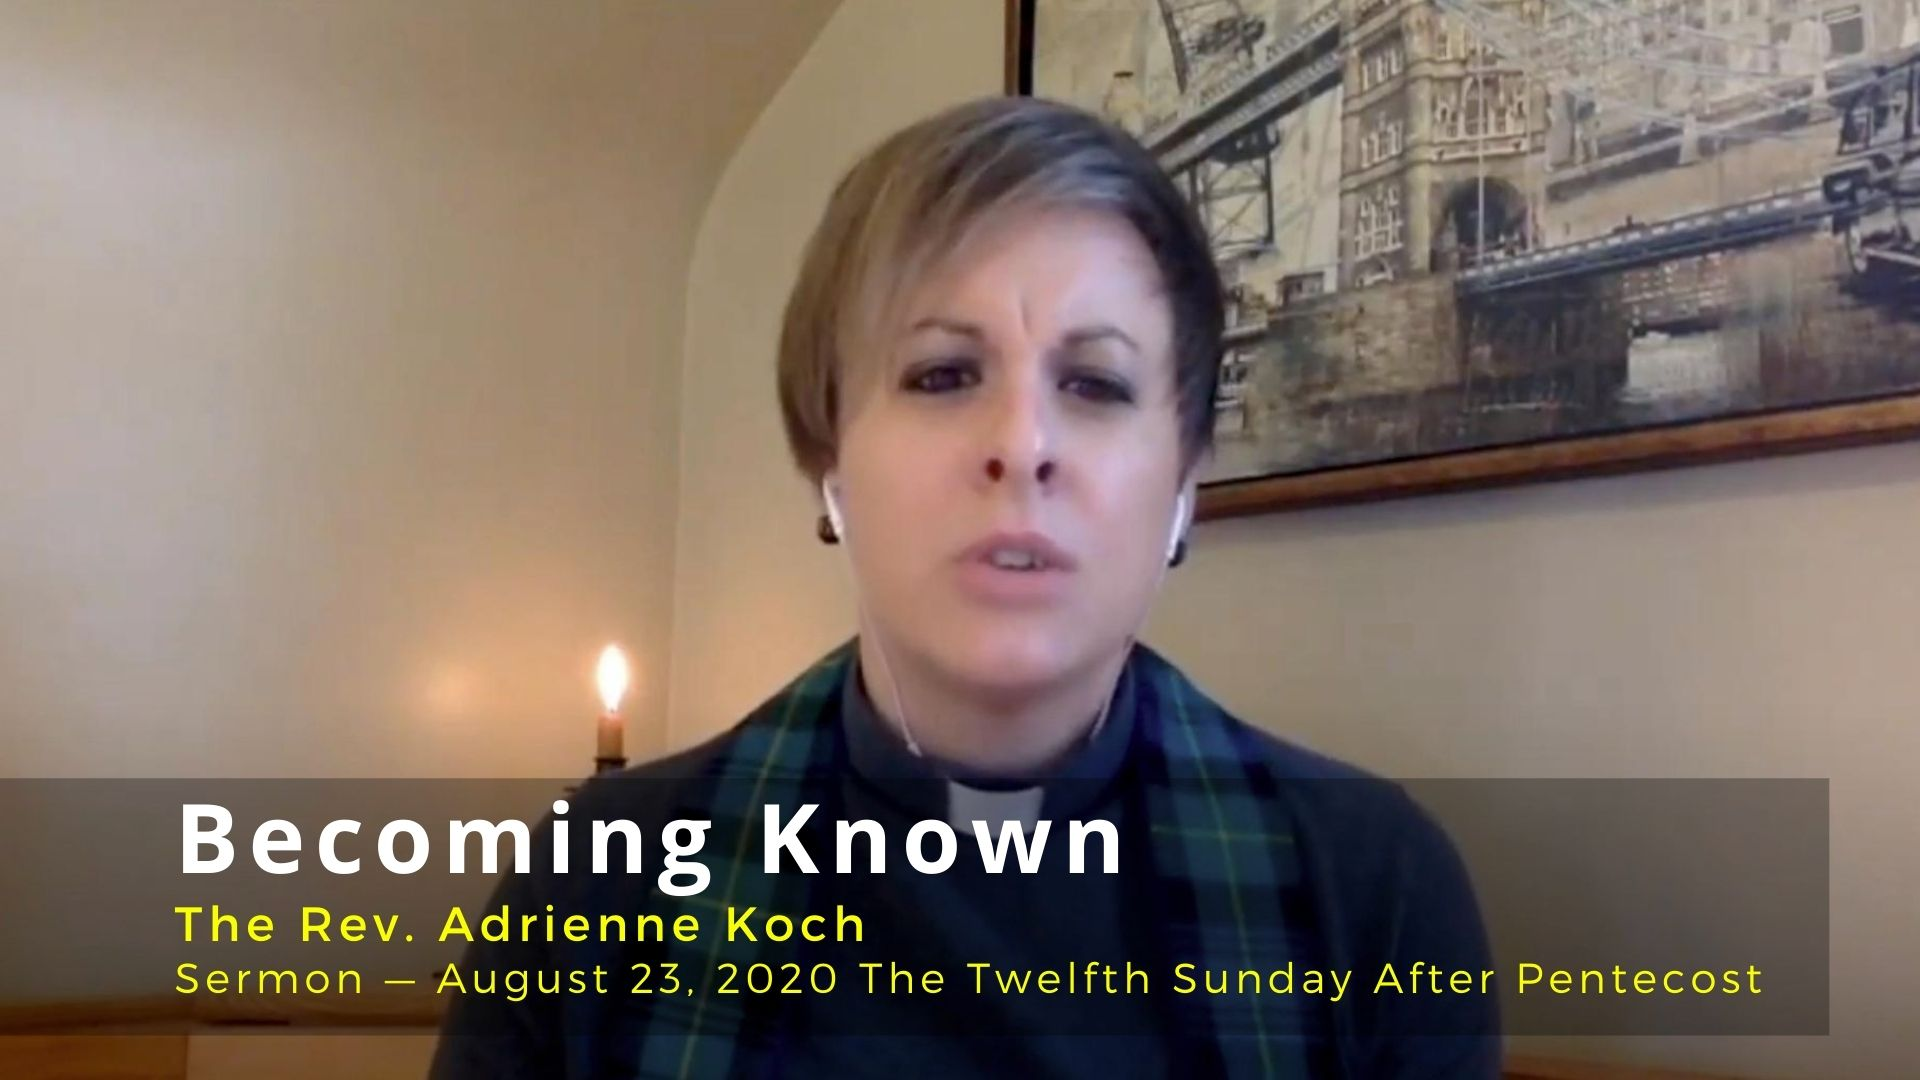 Video Sermon: Becoming Known